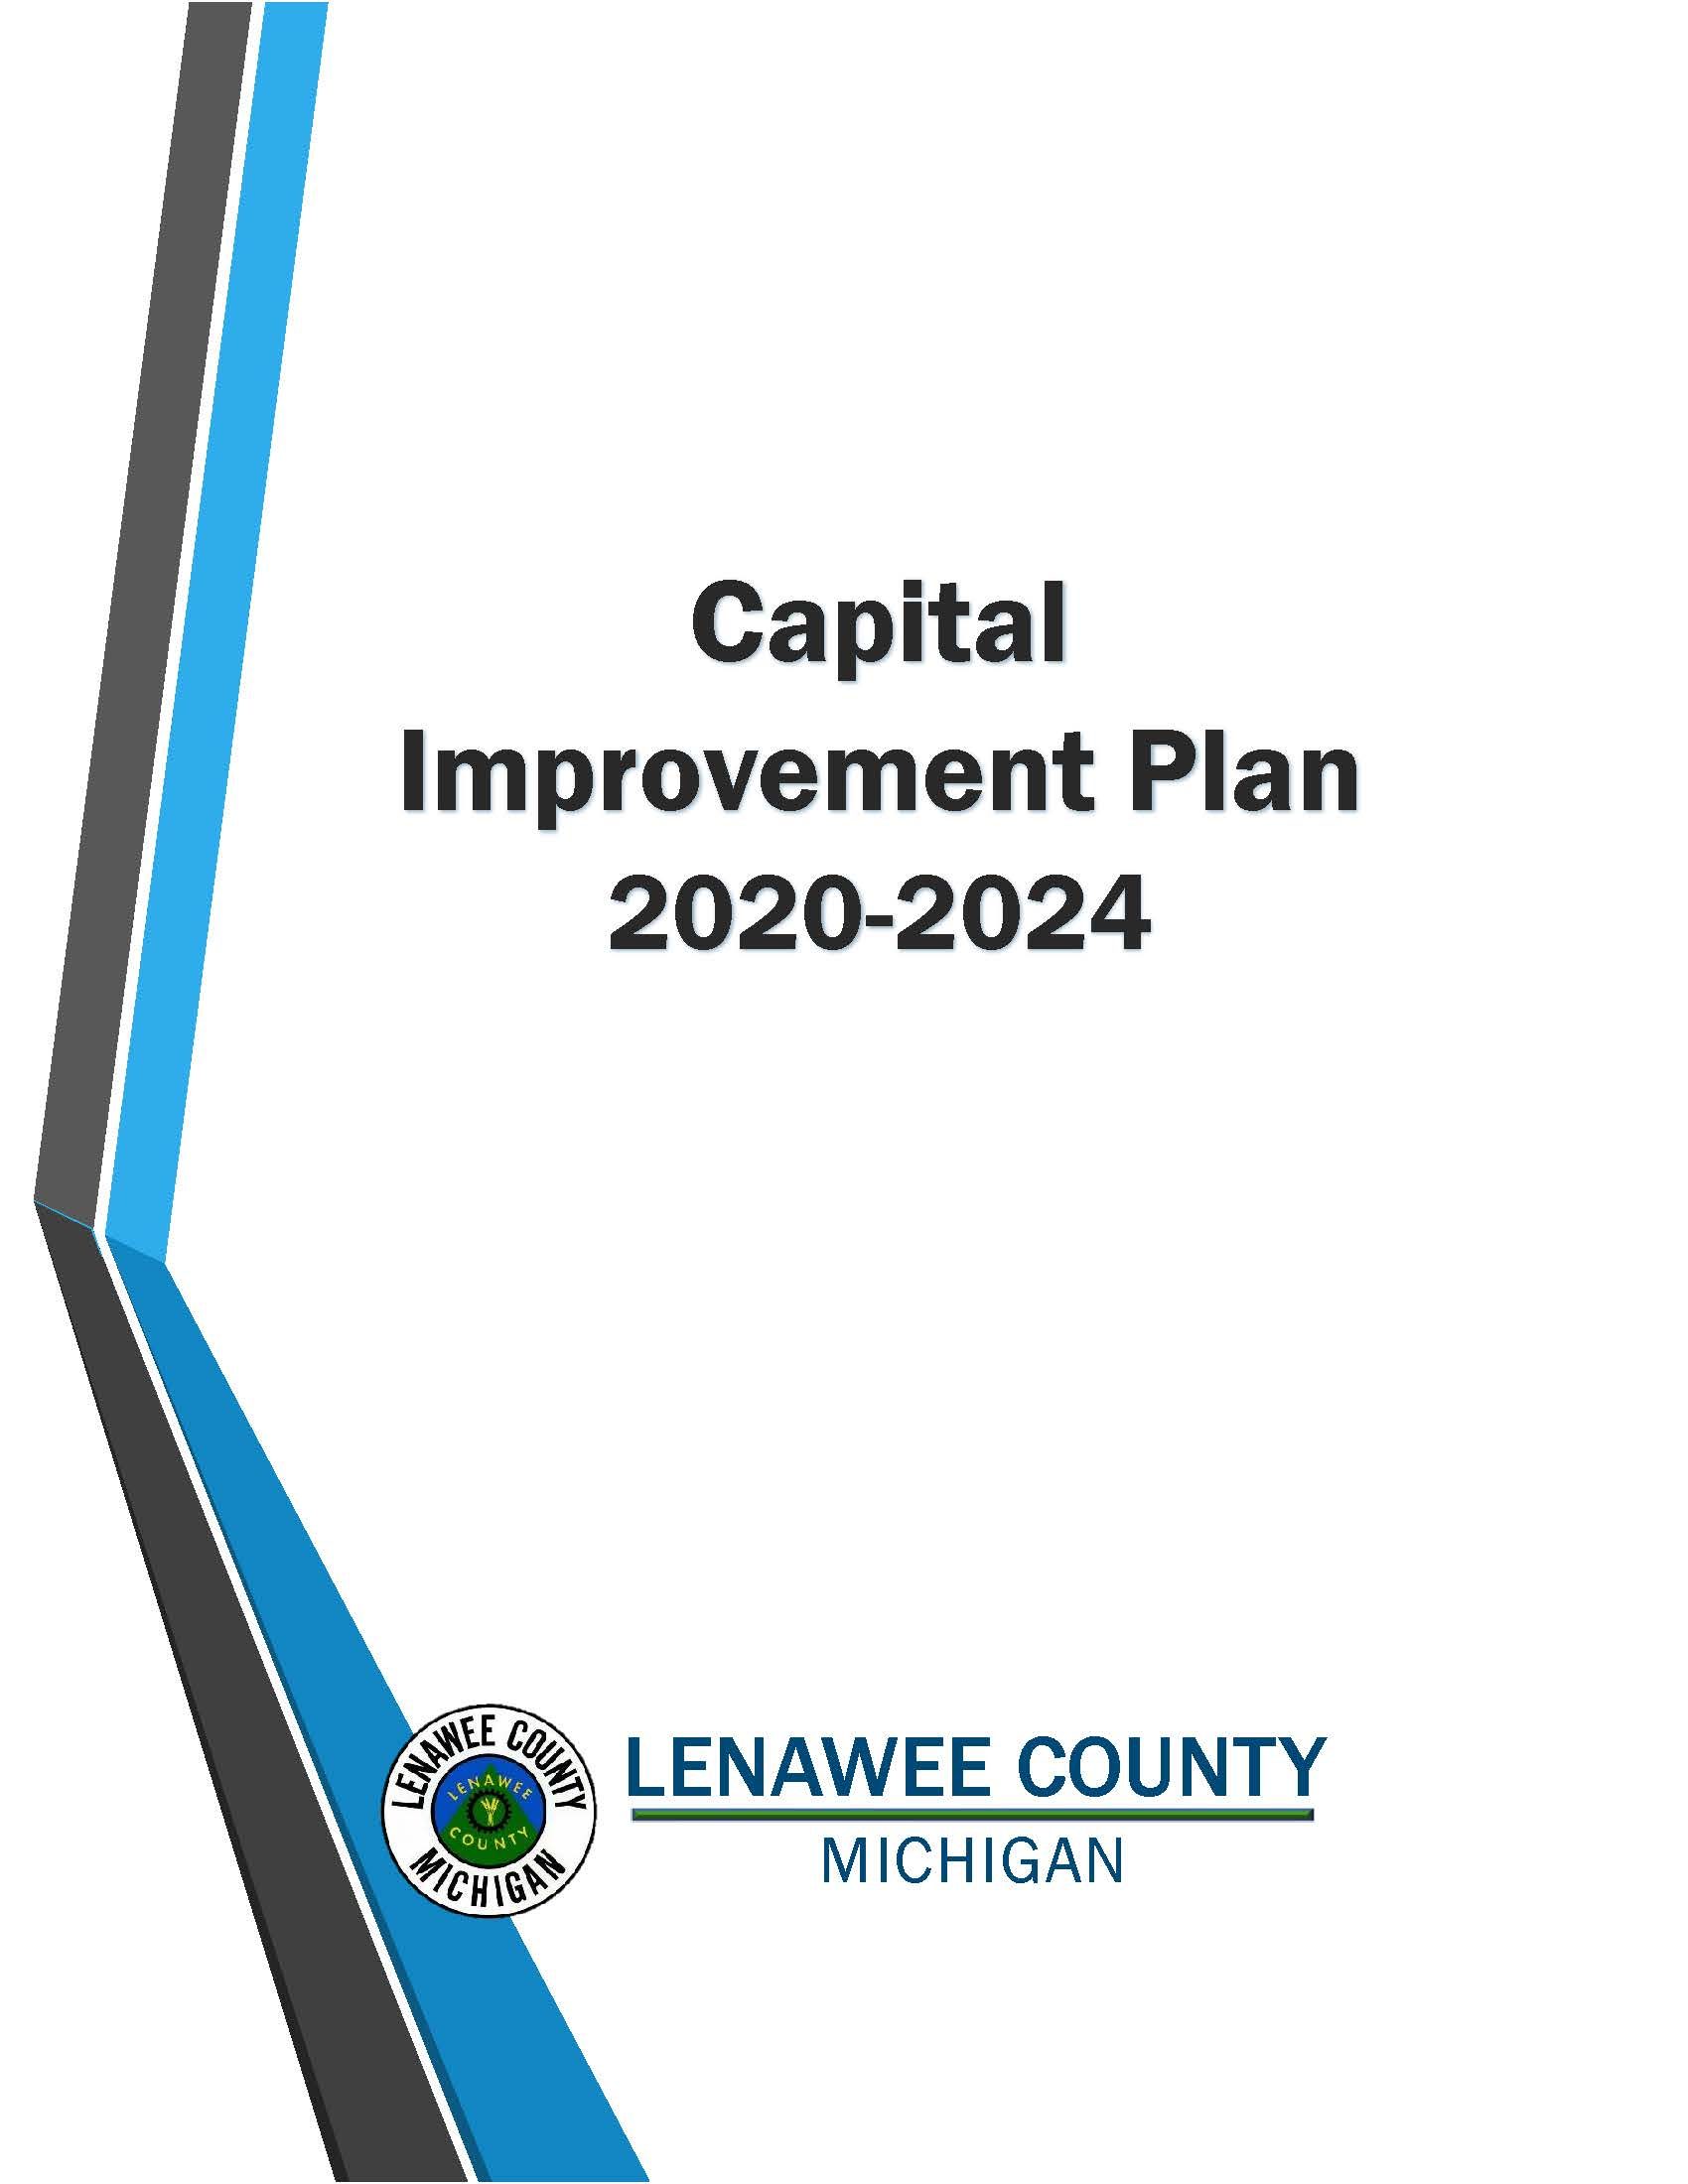 Title Page of the Capital Improvement Plan 2020